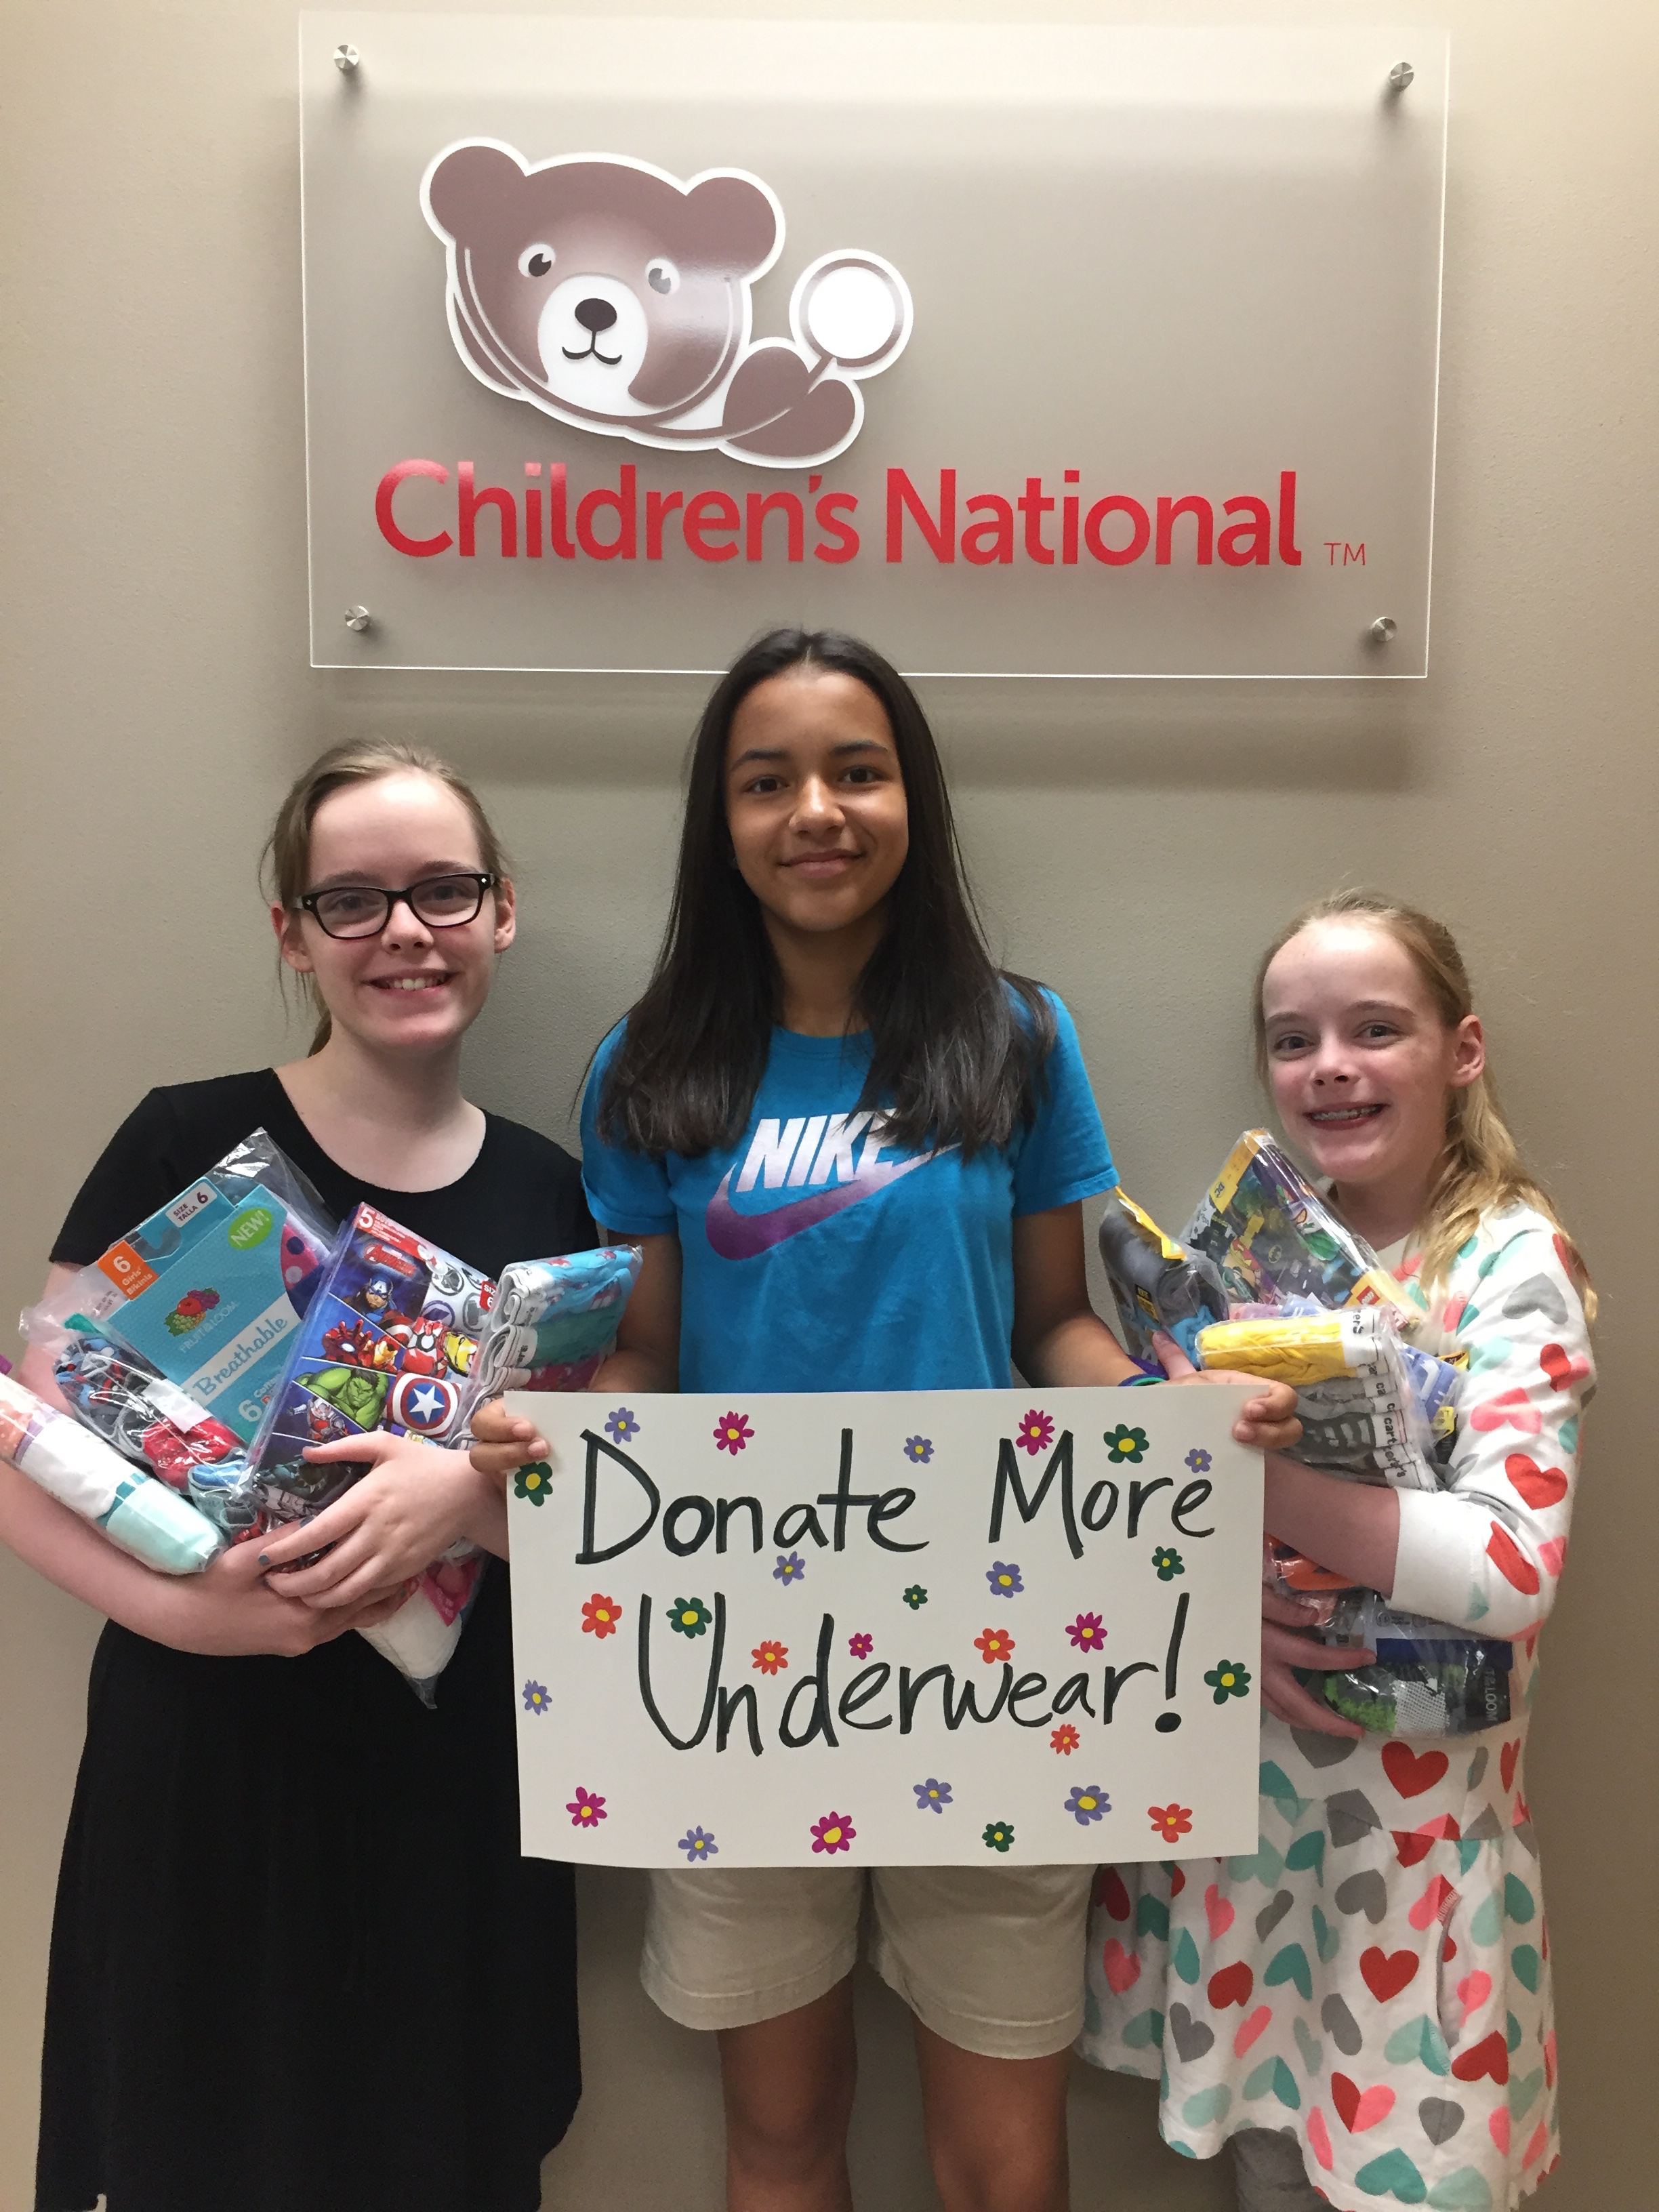 From left: Sofia Atkinson, Isabel Marchena and Mirabel Atkinson pose in the Children's National Medical Center. The girls collected more than 7,000 pairs of underwear which they then donated to the medical center.